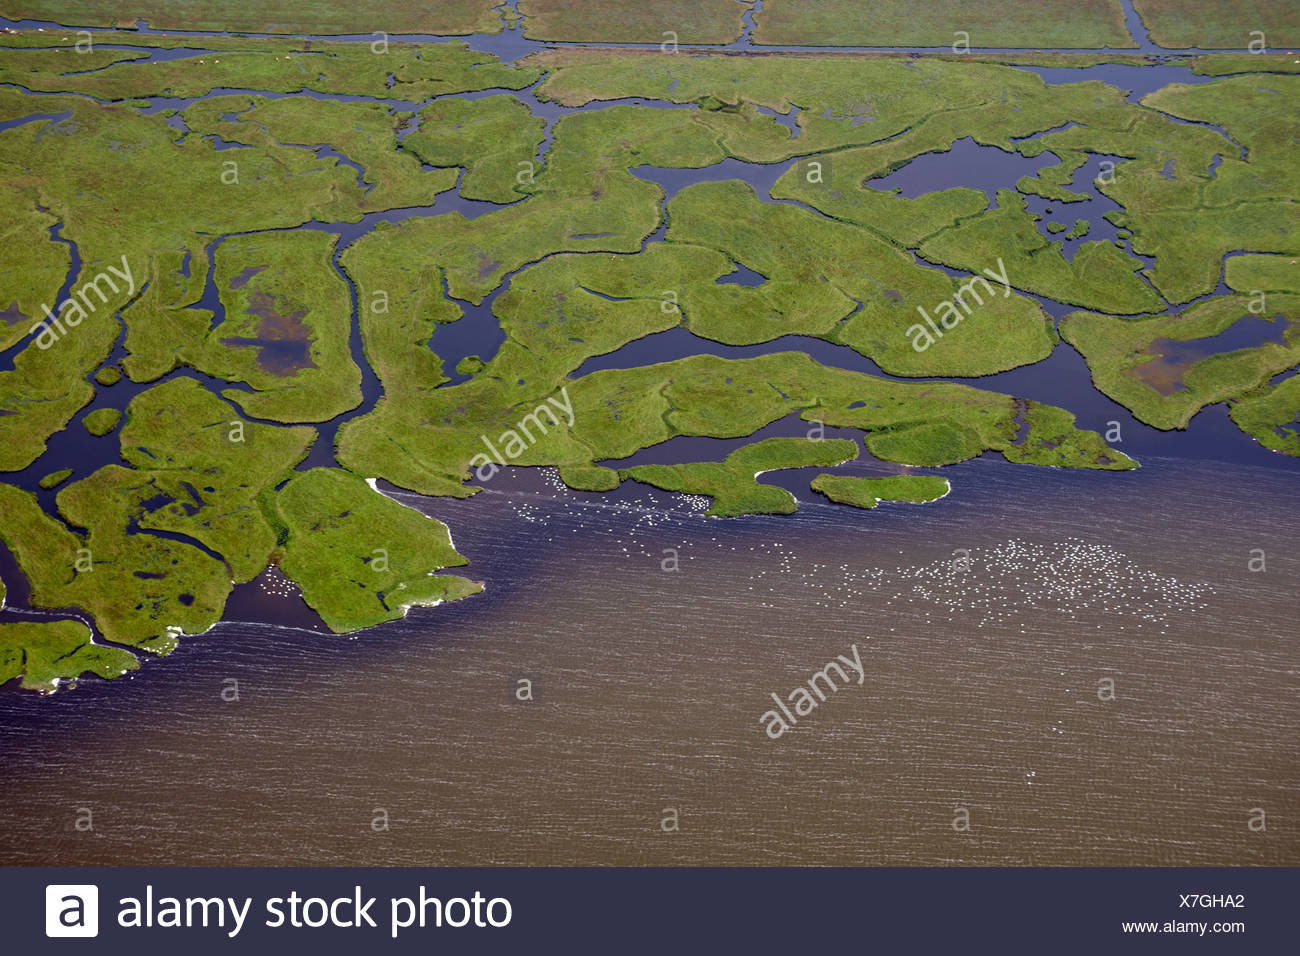 Several rivers flowing into a body of water, aerial view Stock Photo